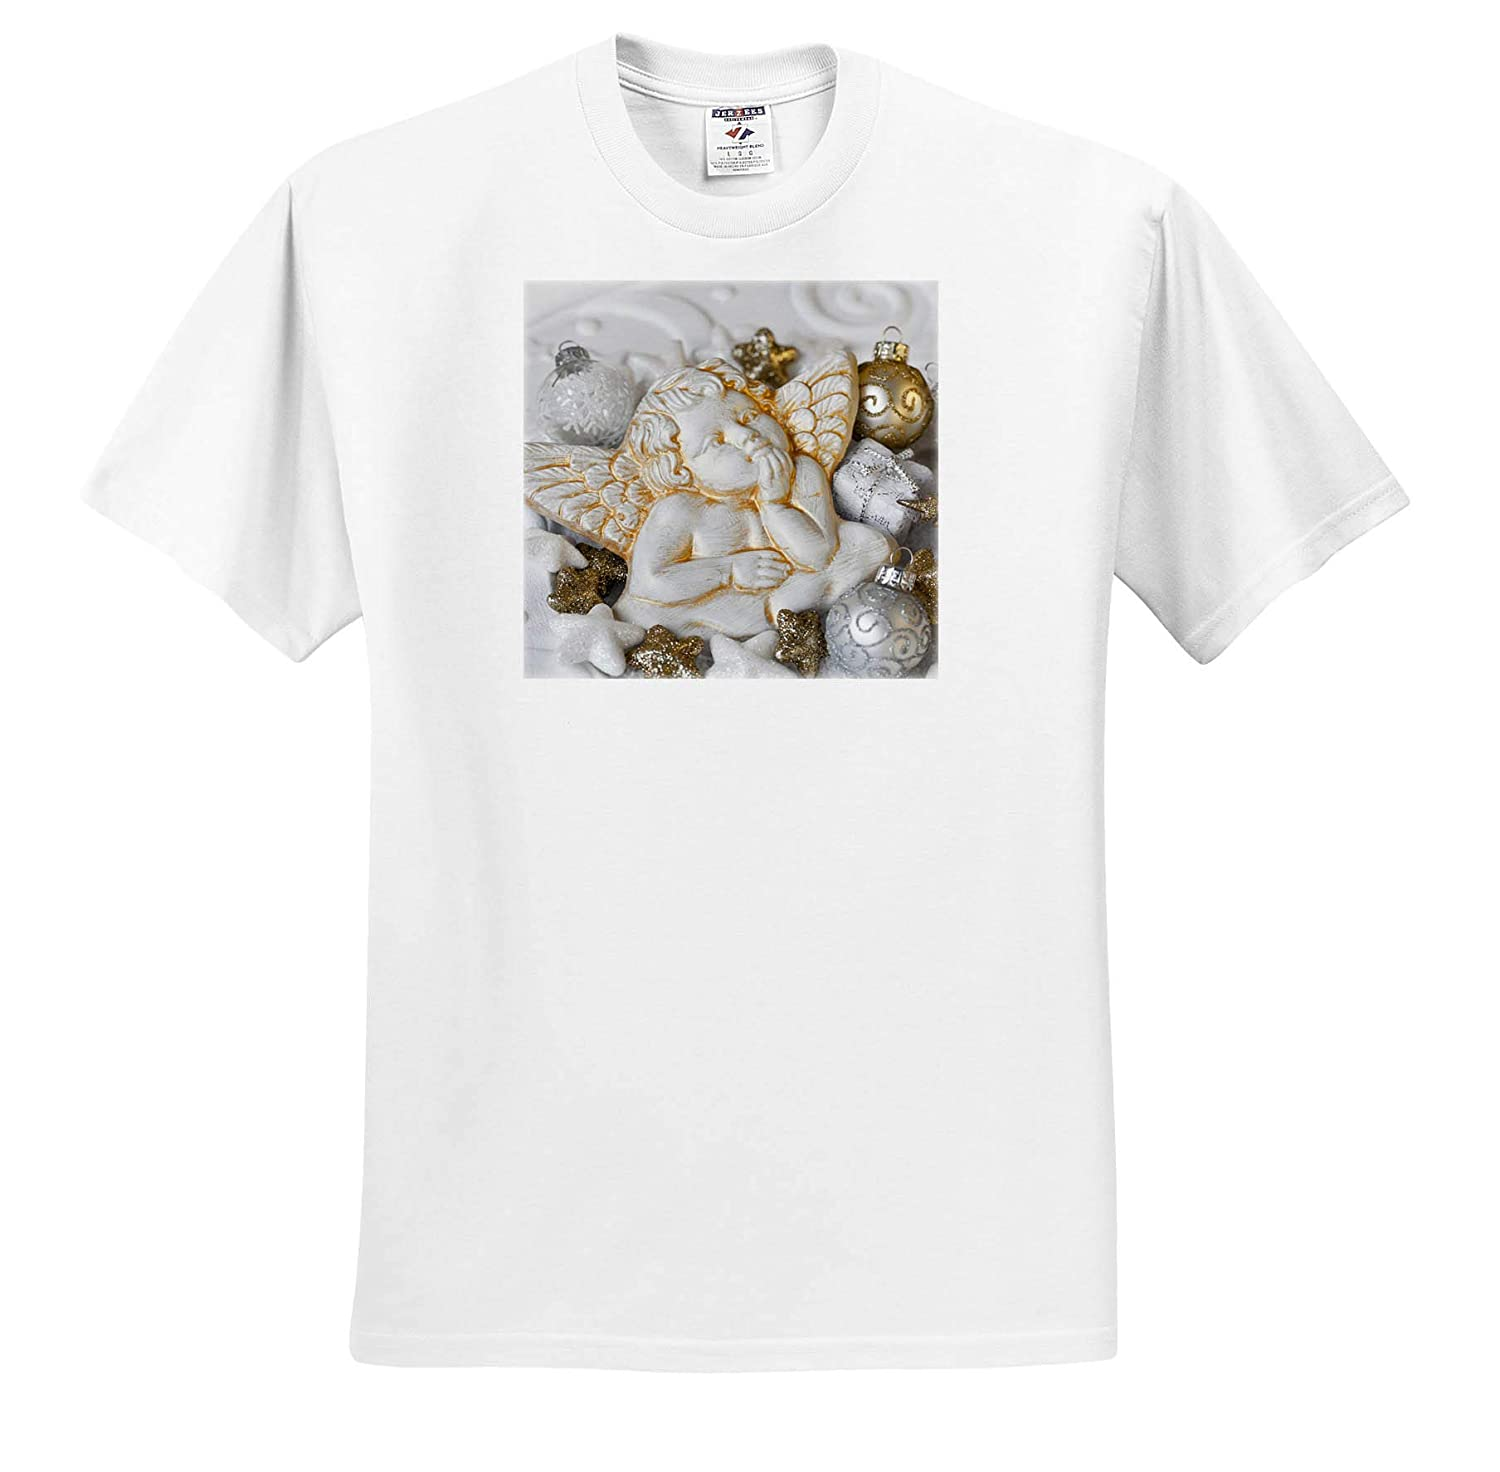 Christmas Ornaments with White Cherub Photography 3dRose Andrea Haase Christmas Photography ts/_318595 Adult T-Shirt XL